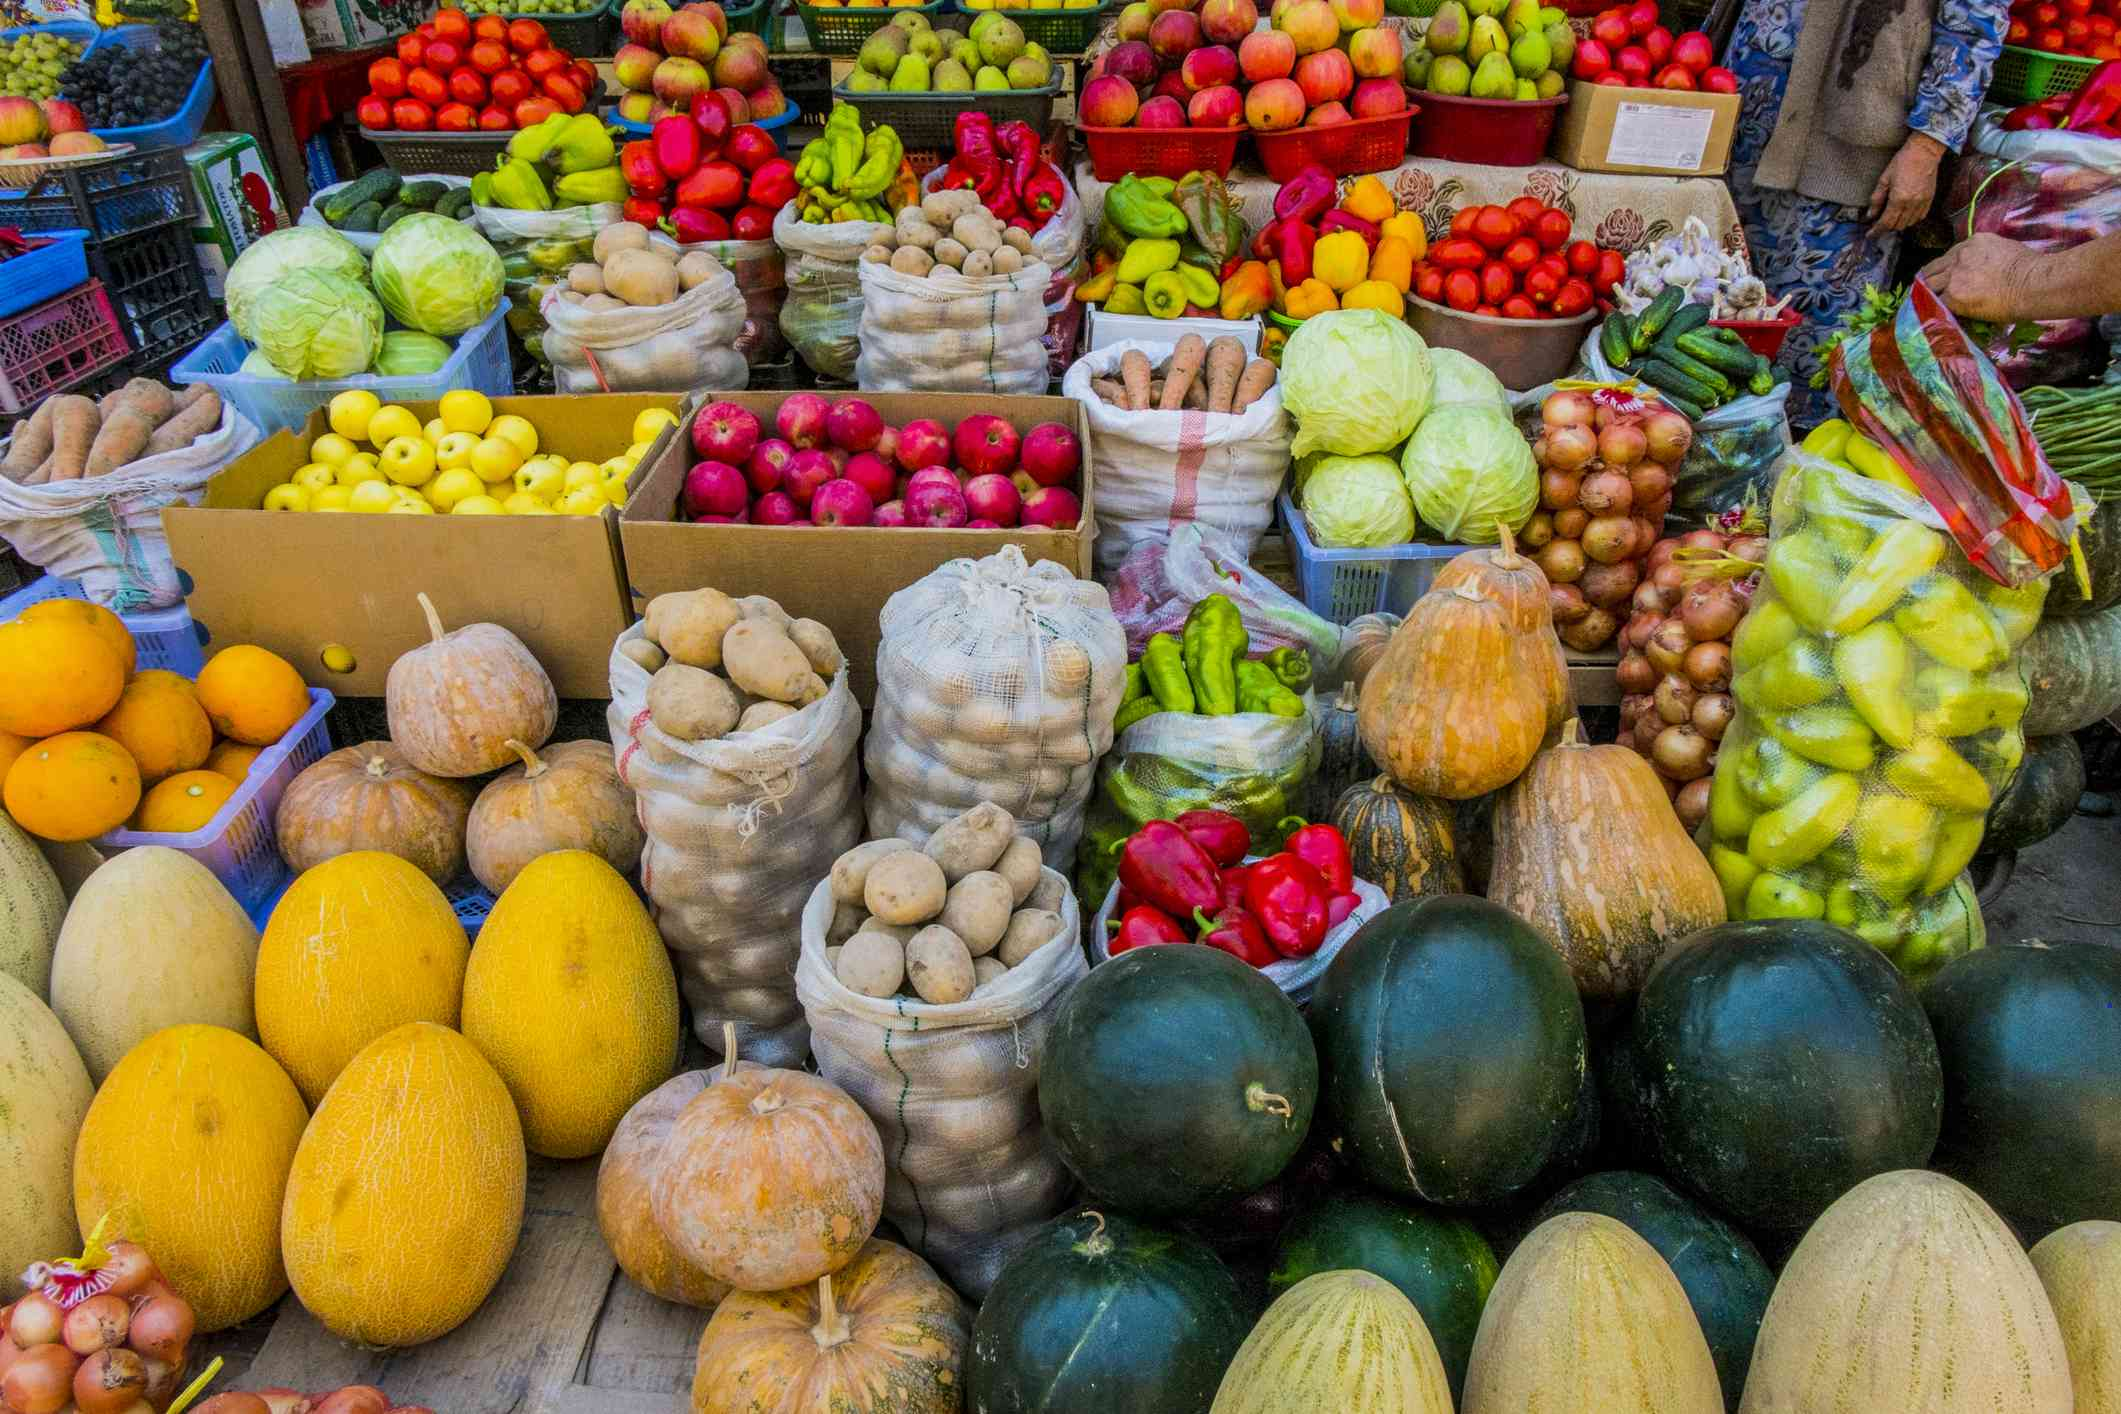 Variety of colorful fruits and vegetables, including melons, squash, tomatoes, potatoes, and apples, on tables, in boxes, and in bags at a farmer's market